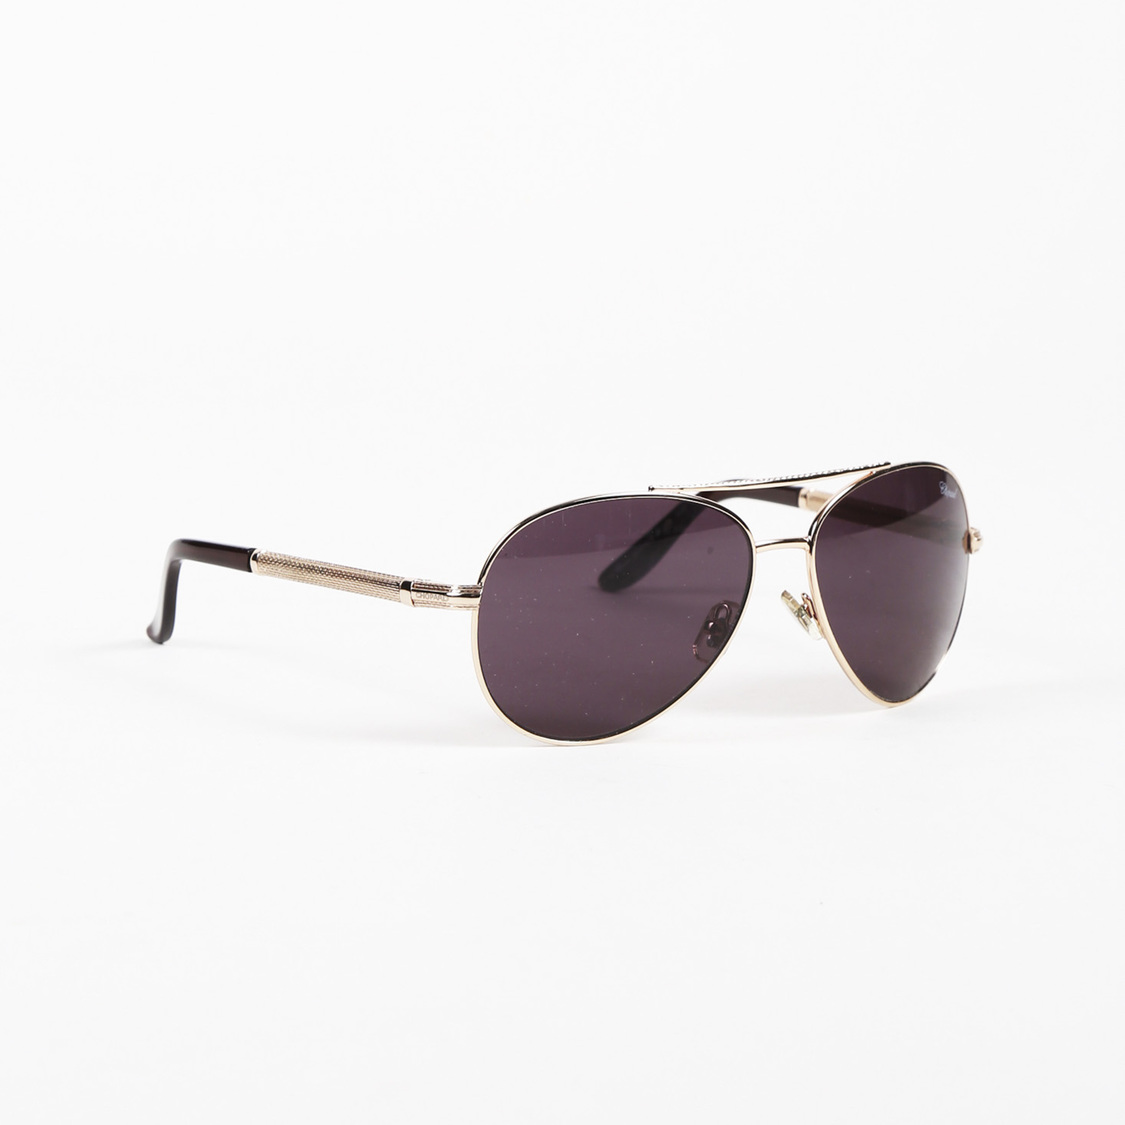 6a084b2f65c7 Details about Chopard Gold Tone Tinted Aviator Sunglasses